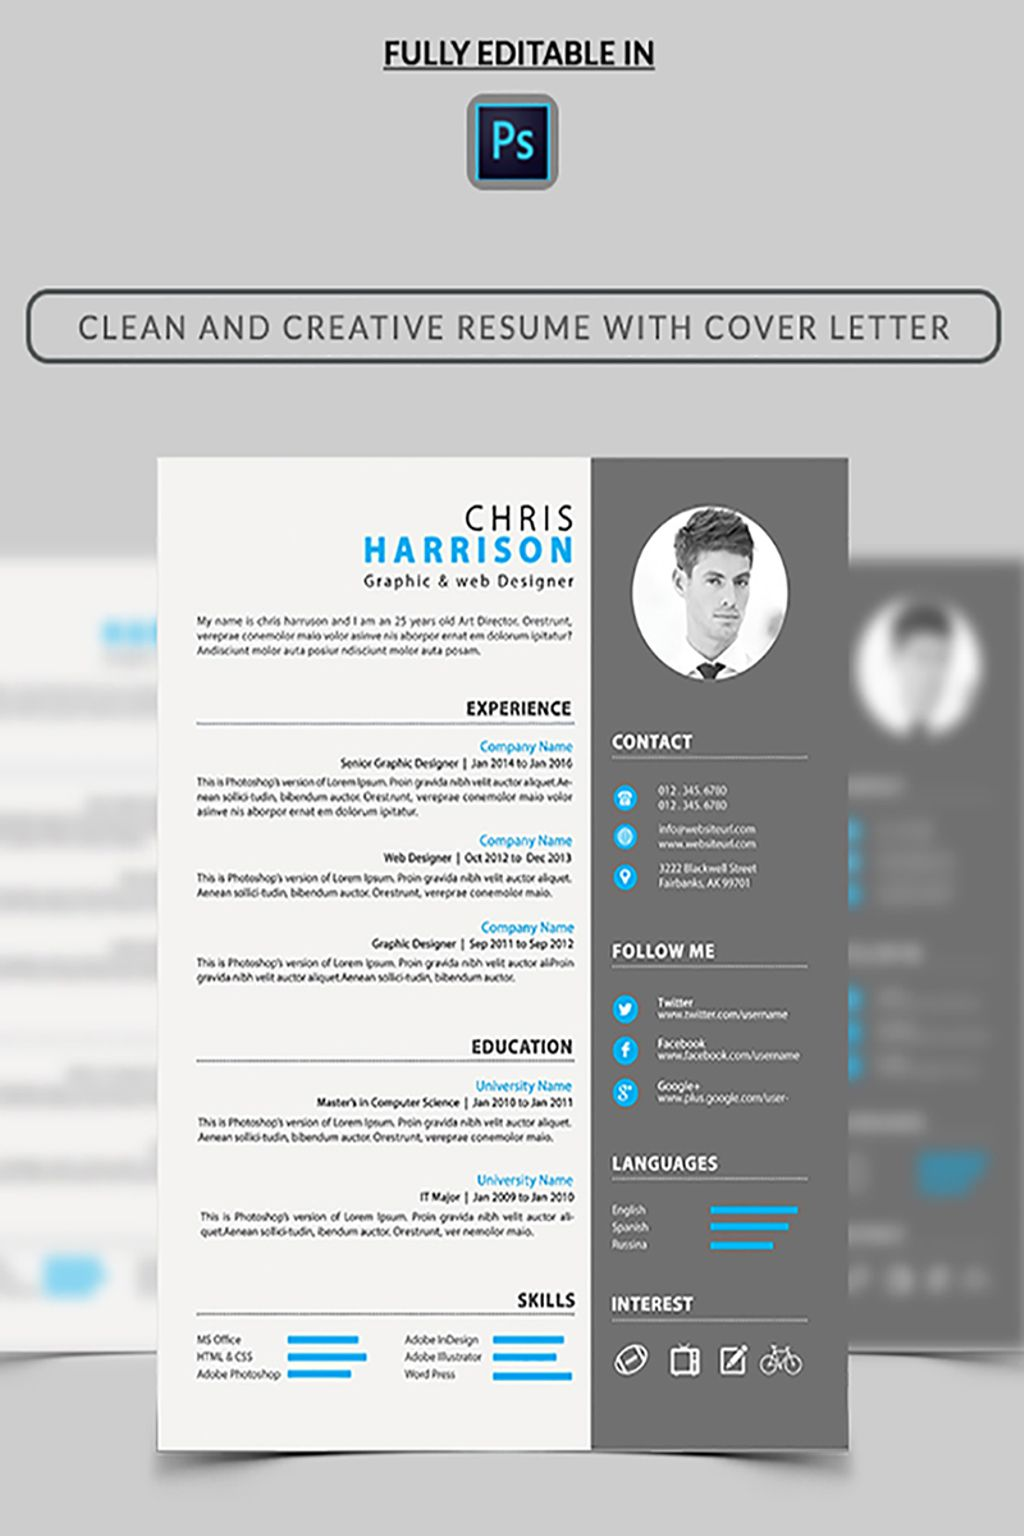 Web Designer Resume Template Big Screenshot  Resume Website Design